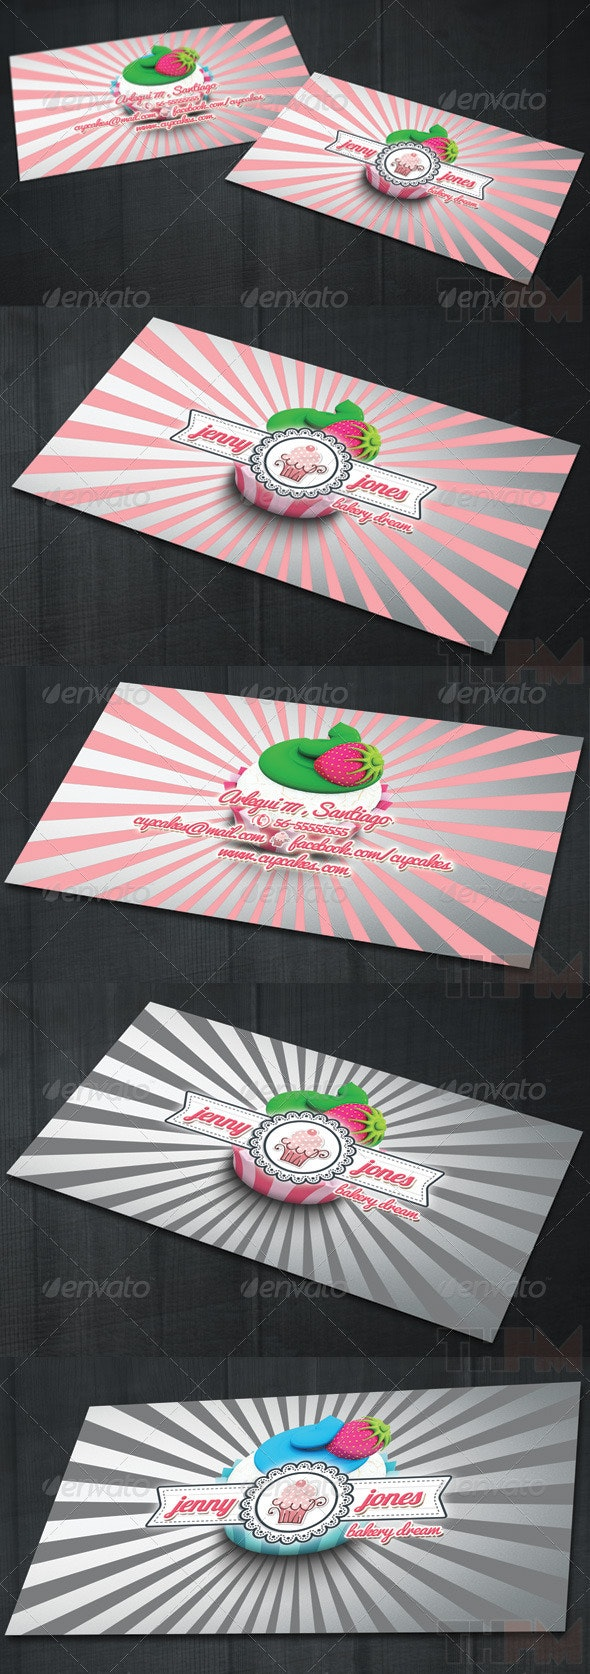 Bakery and Cupcakes Business Card - Creative Business Cards